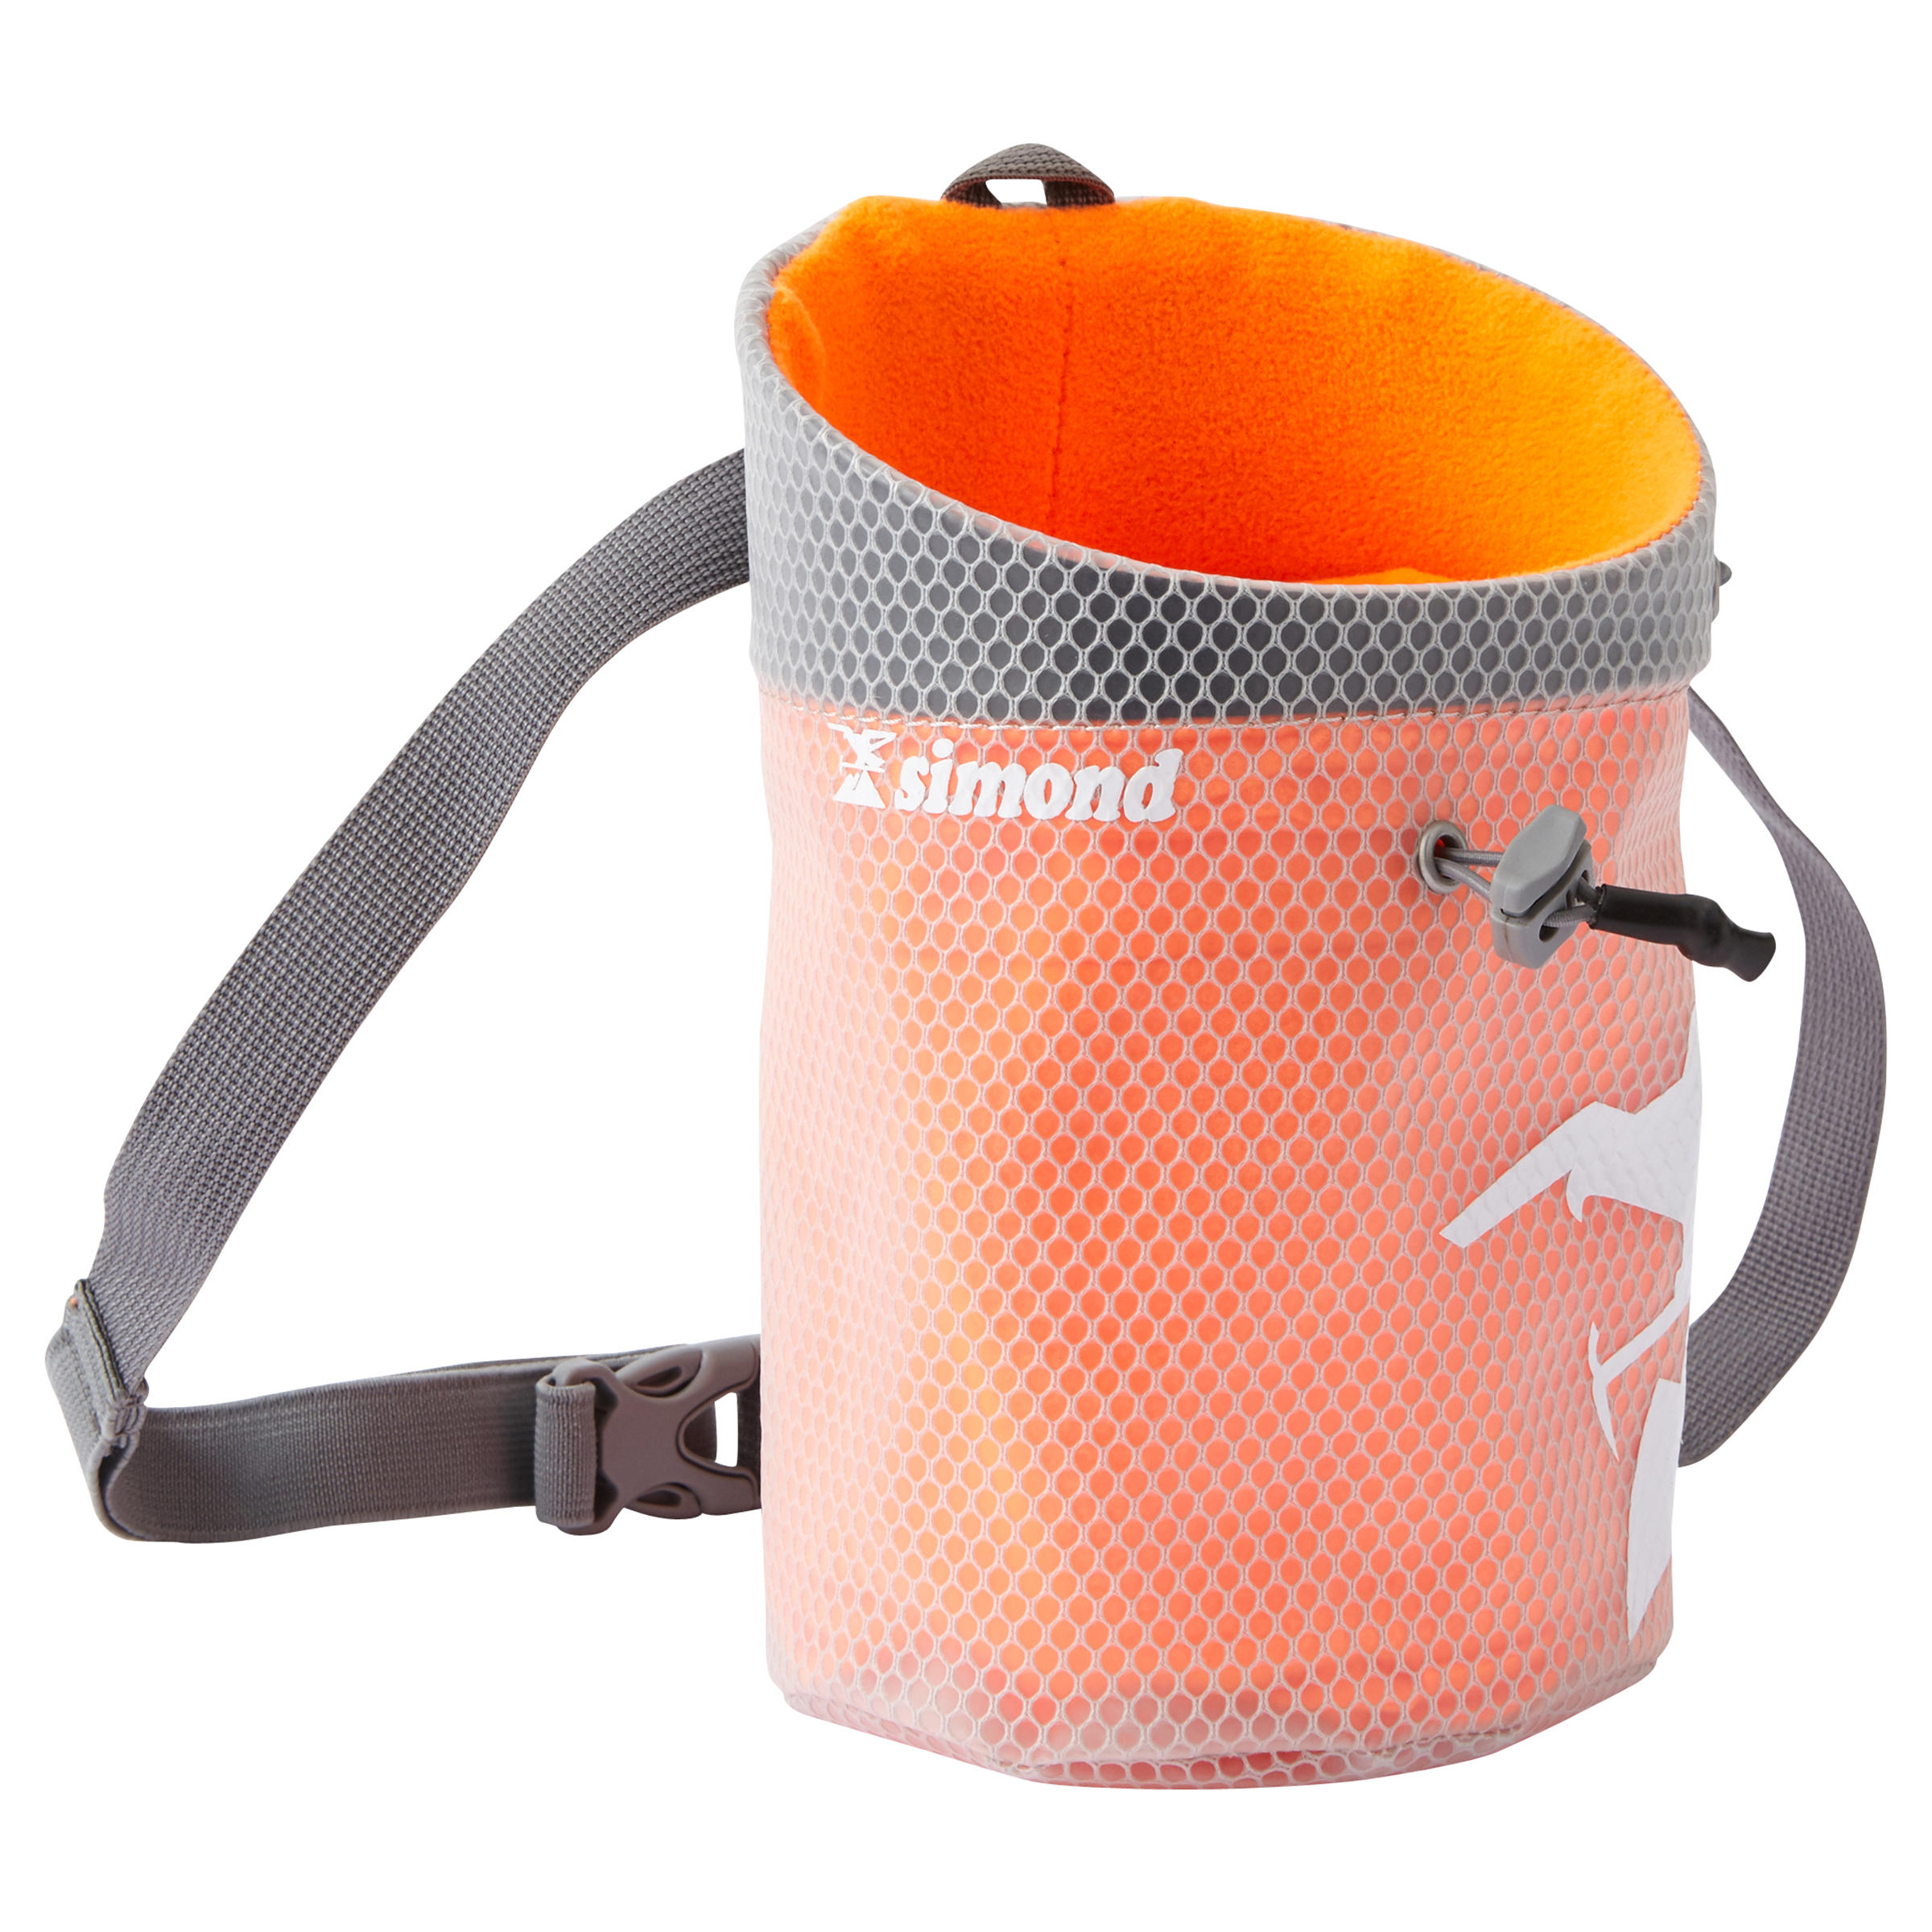 Honeycomb Chalk Bag